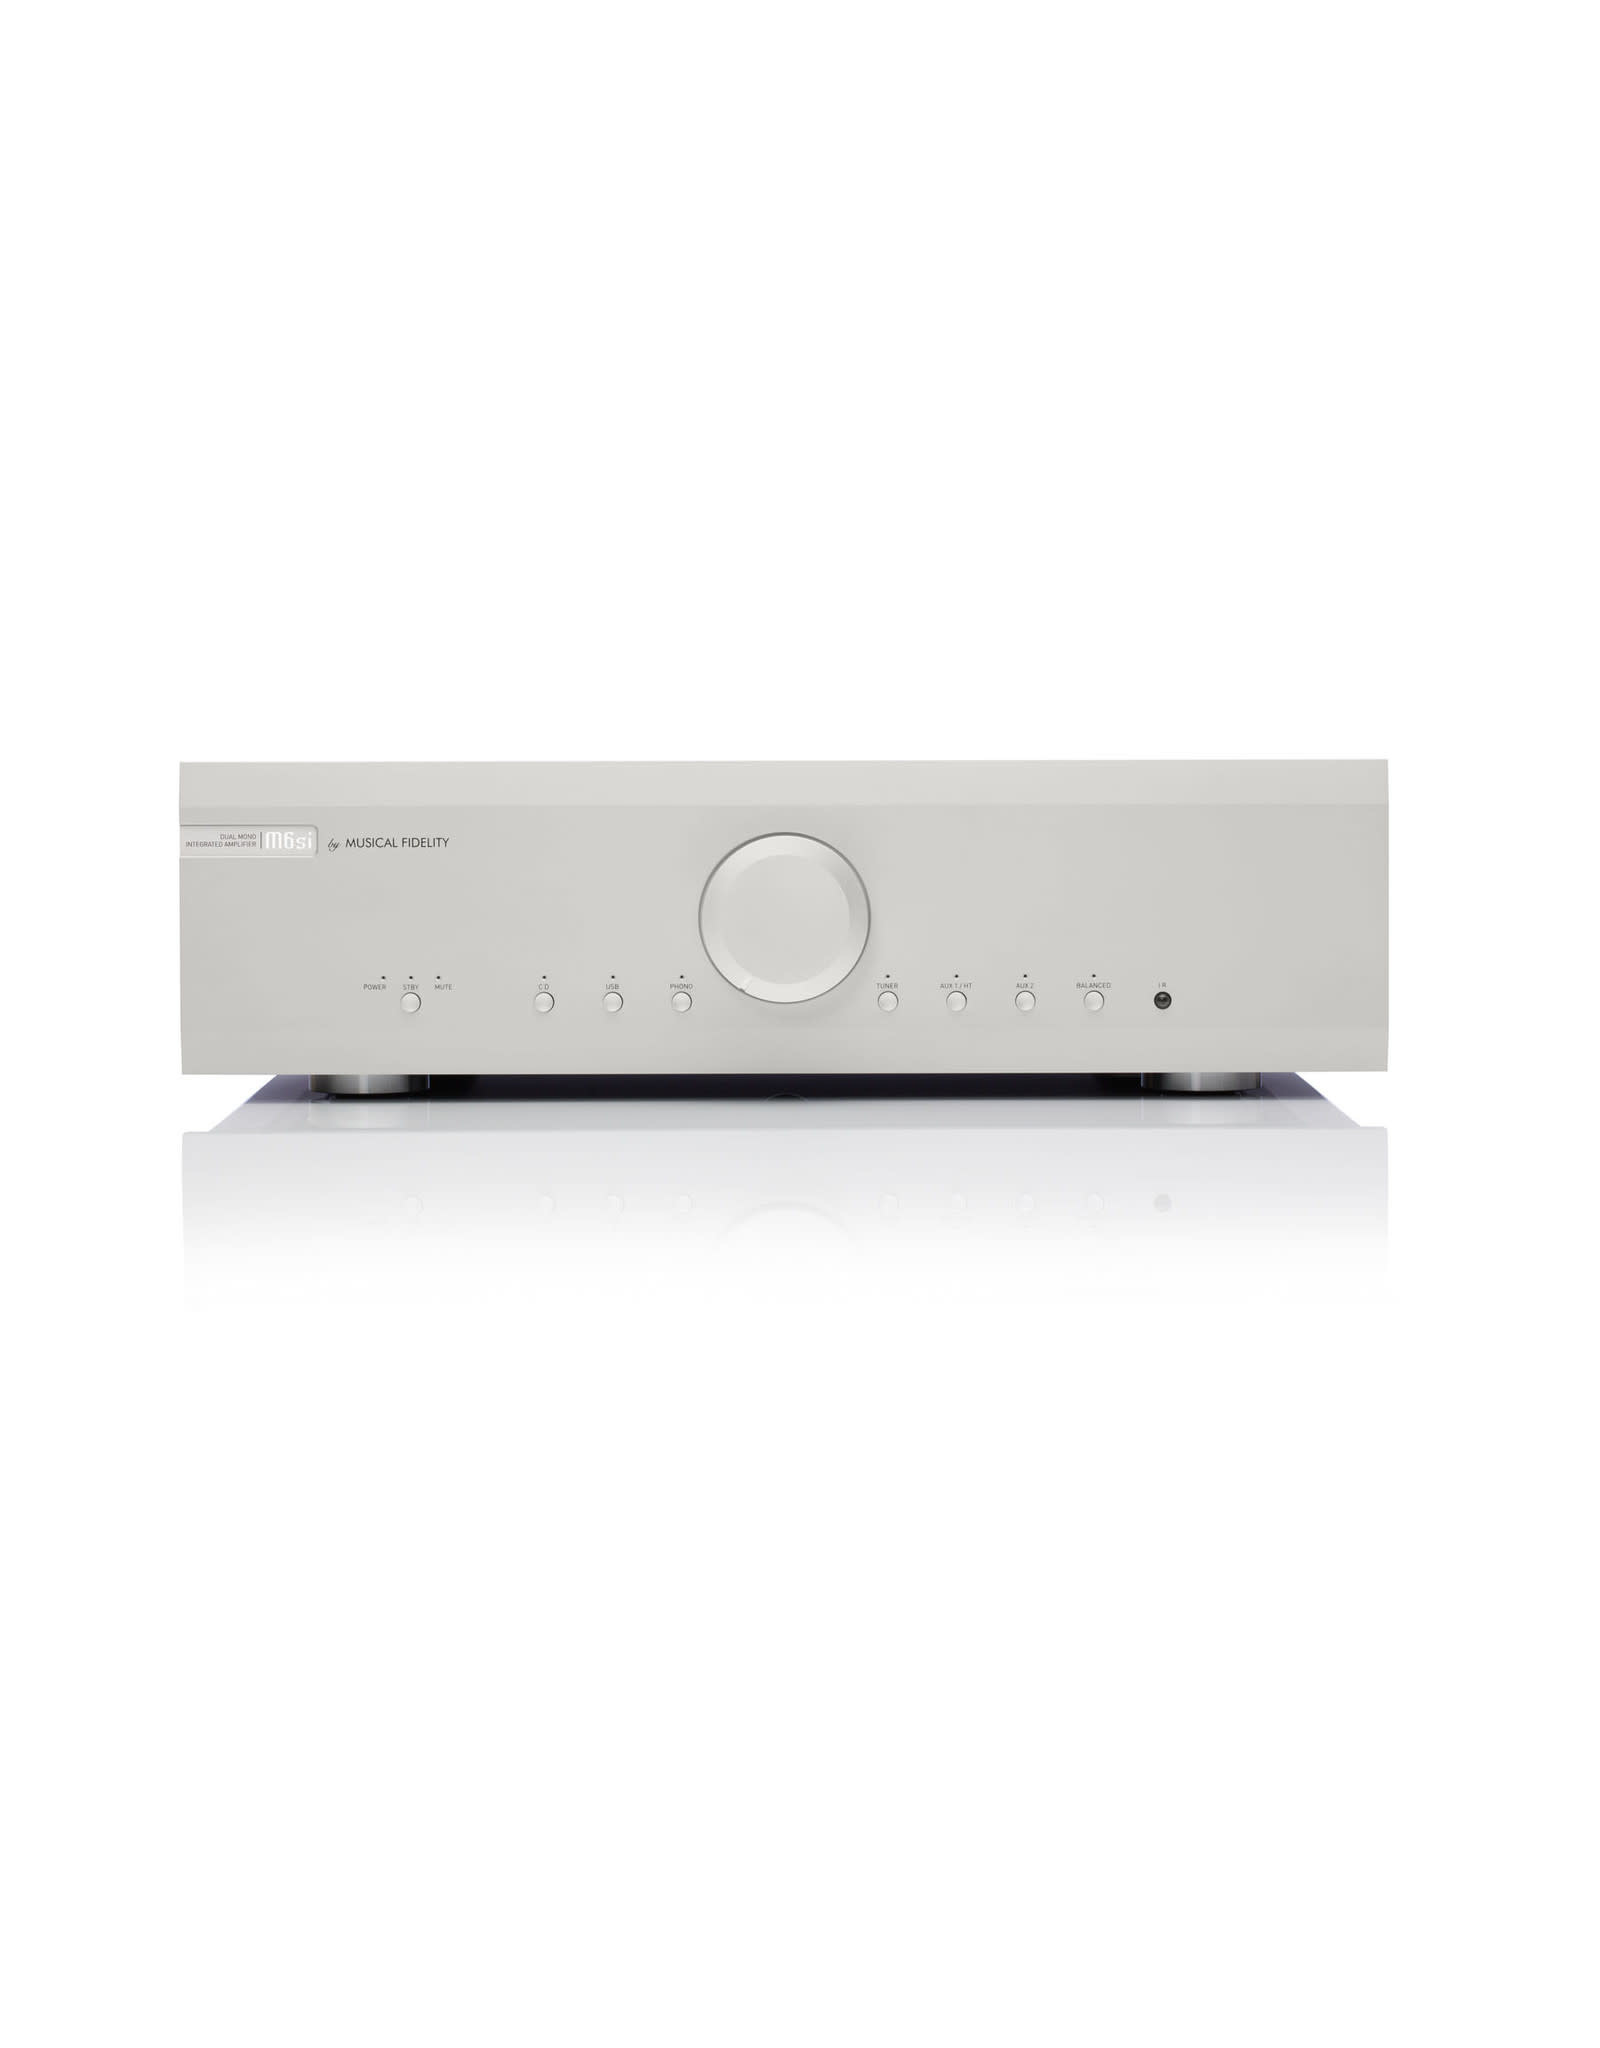 Musical Fidelity Musical Fidelity M6si Integrated Amplifier Silver USED (B STOCK)